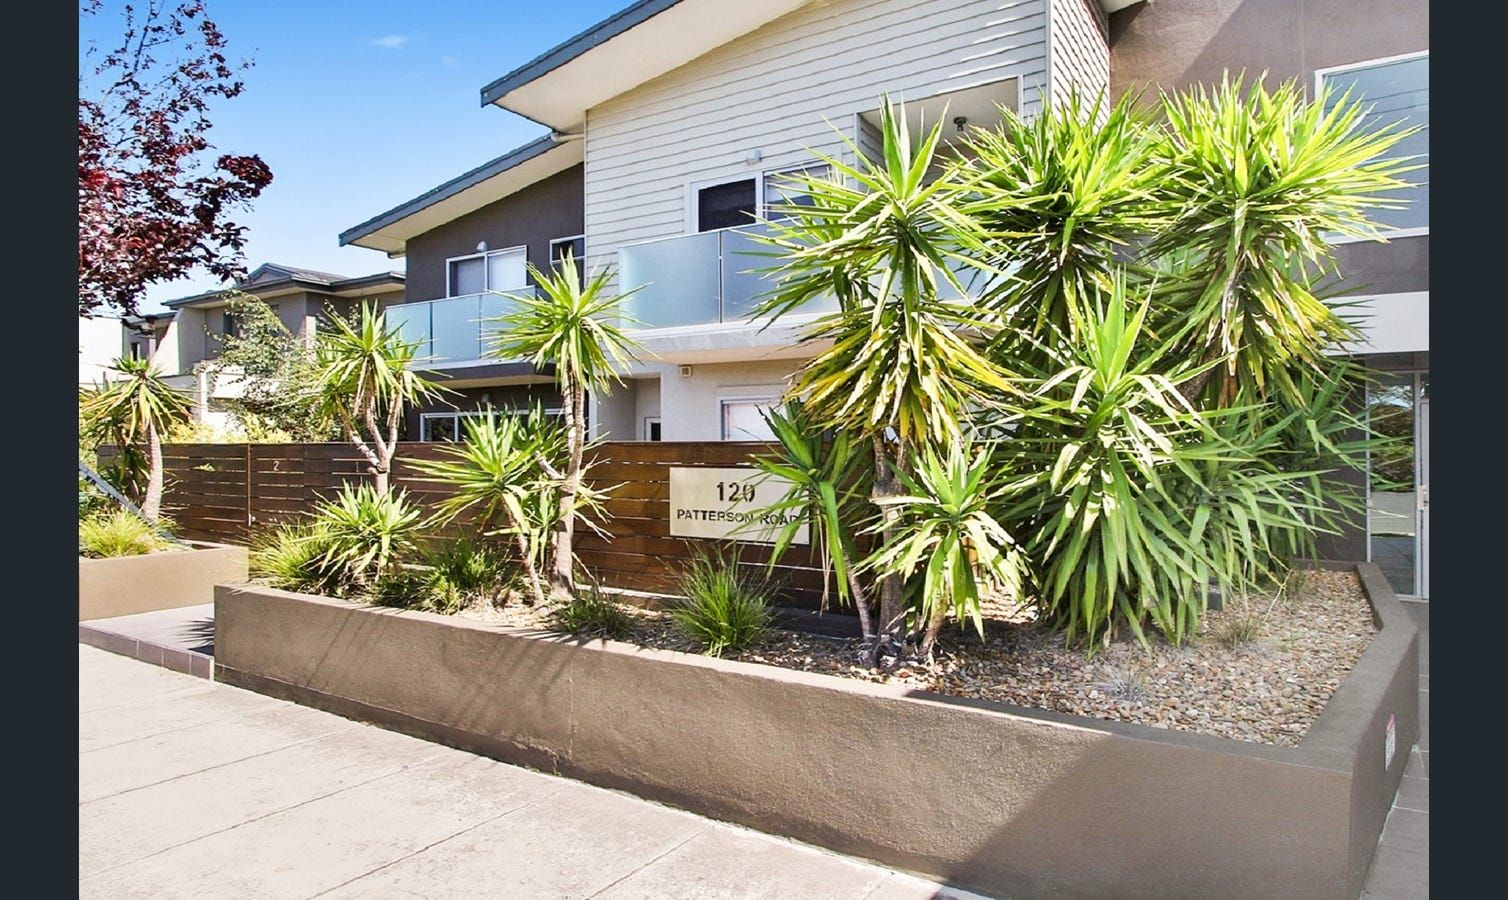 14/120 Patterson Road, Bentleigh VIC 3204, Image 0